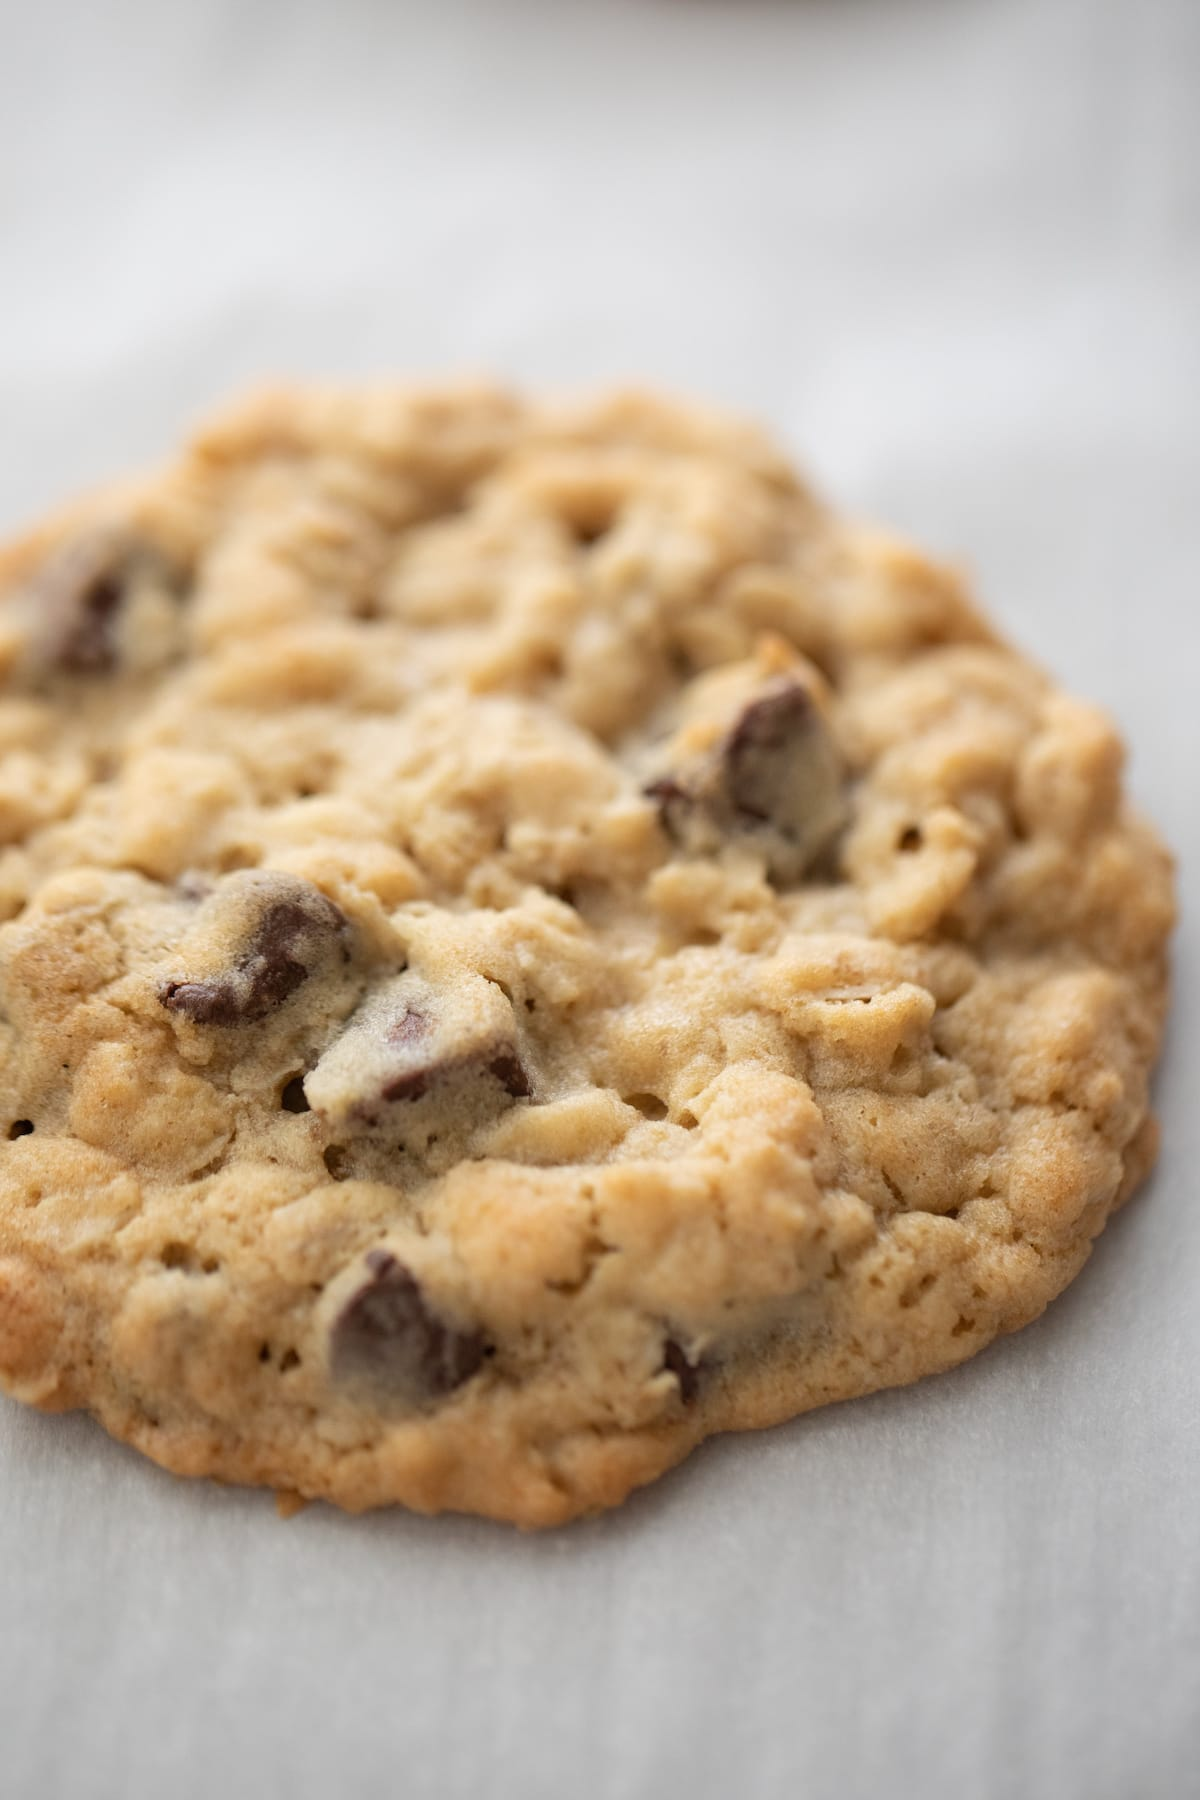 oatmeal chocolate chip cookies on baking sheet